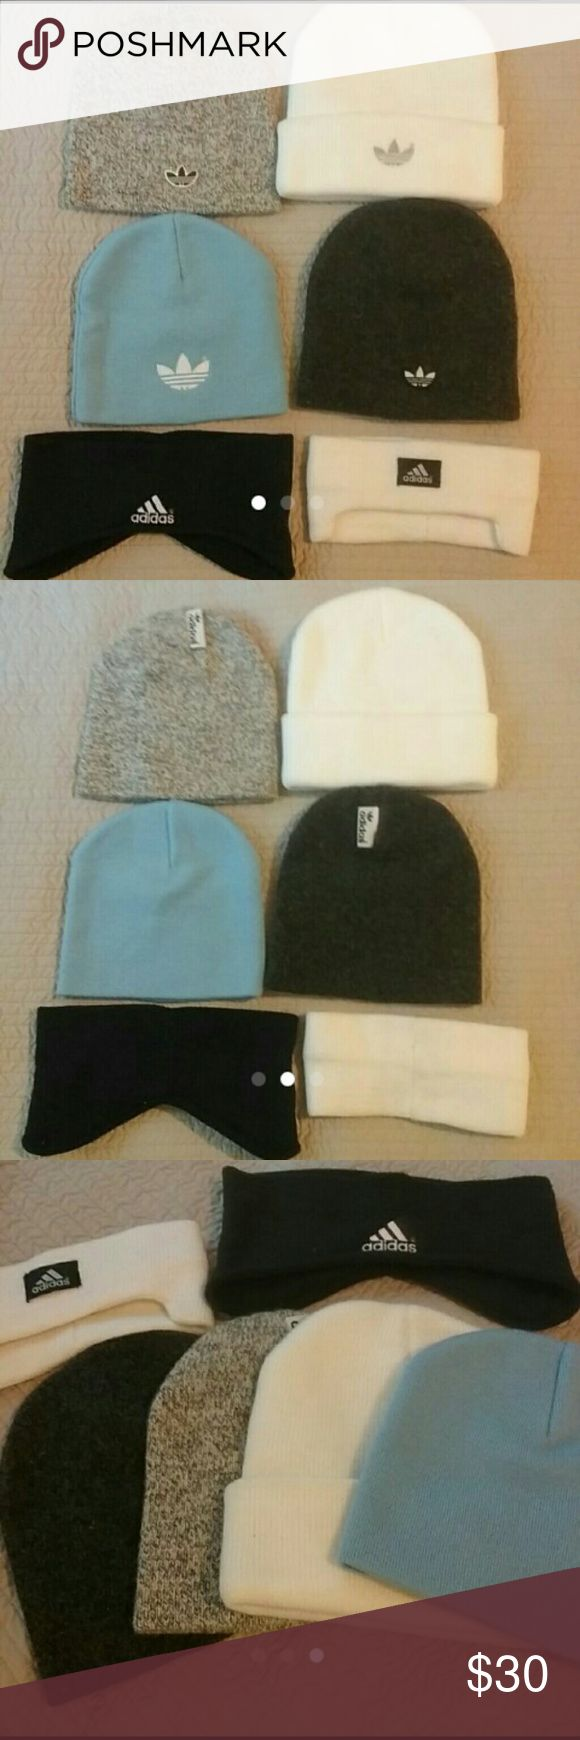 6 Adidas Beanie Caps & Ear Warmers Good used condition. No spots or holes. Price is for all  (Box L) adidas Accessories Hats